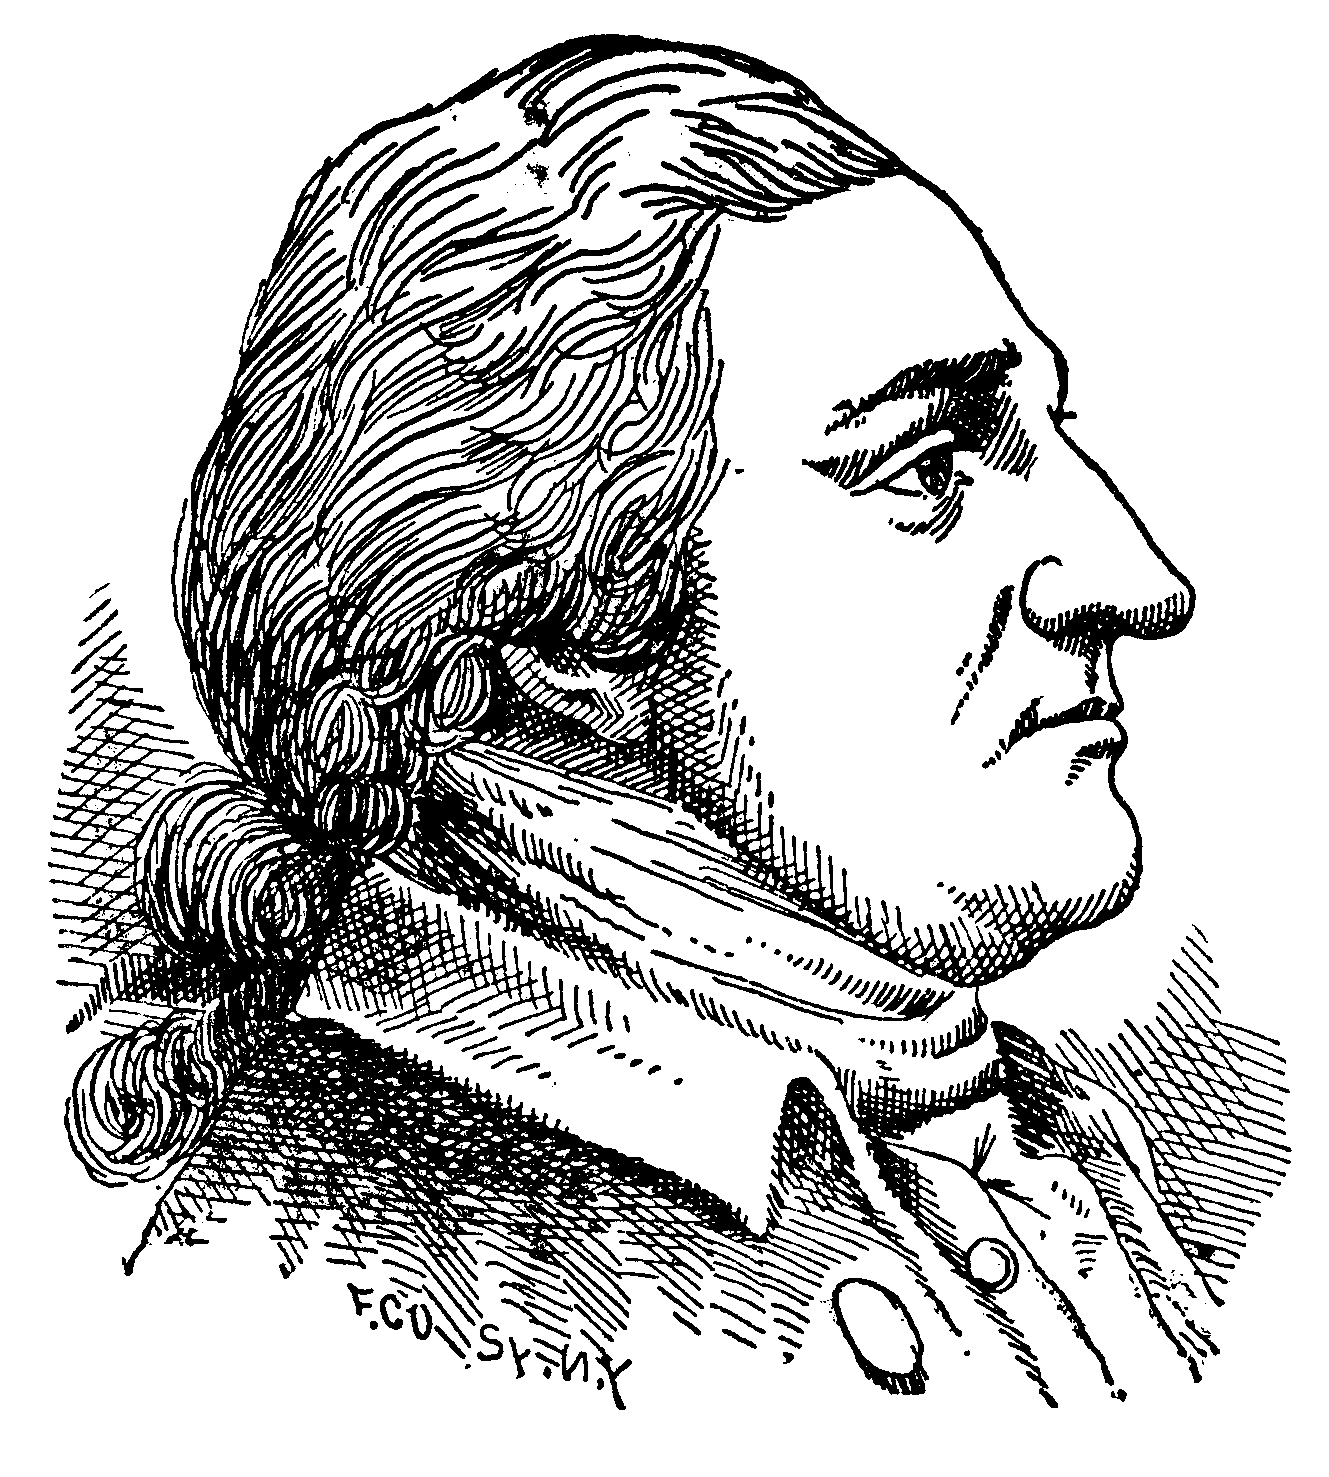 research papers on benedict arnold Benedict arnold - biography if you are looking for free essays, free term papers, or free research papers, you will definitely find it in our database.